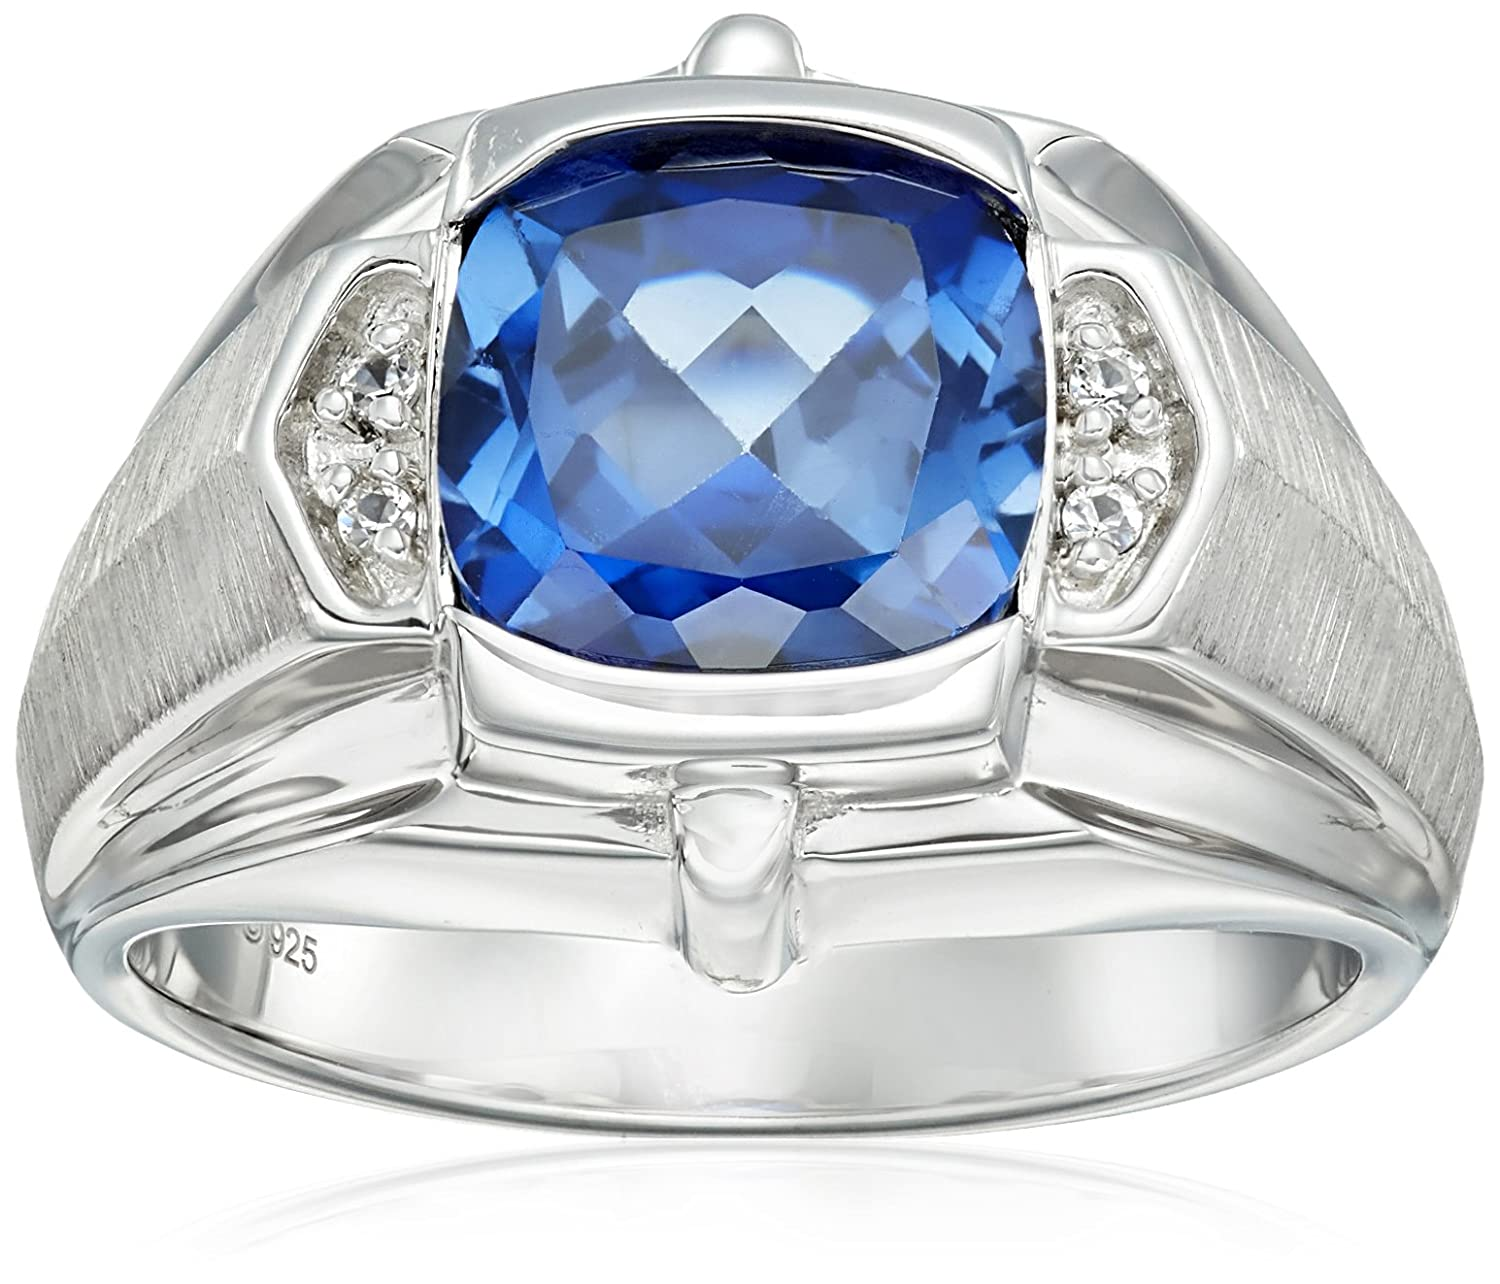 engagement created carat solitaire ip sapphire square ring cut white miabella w walmart gold t com